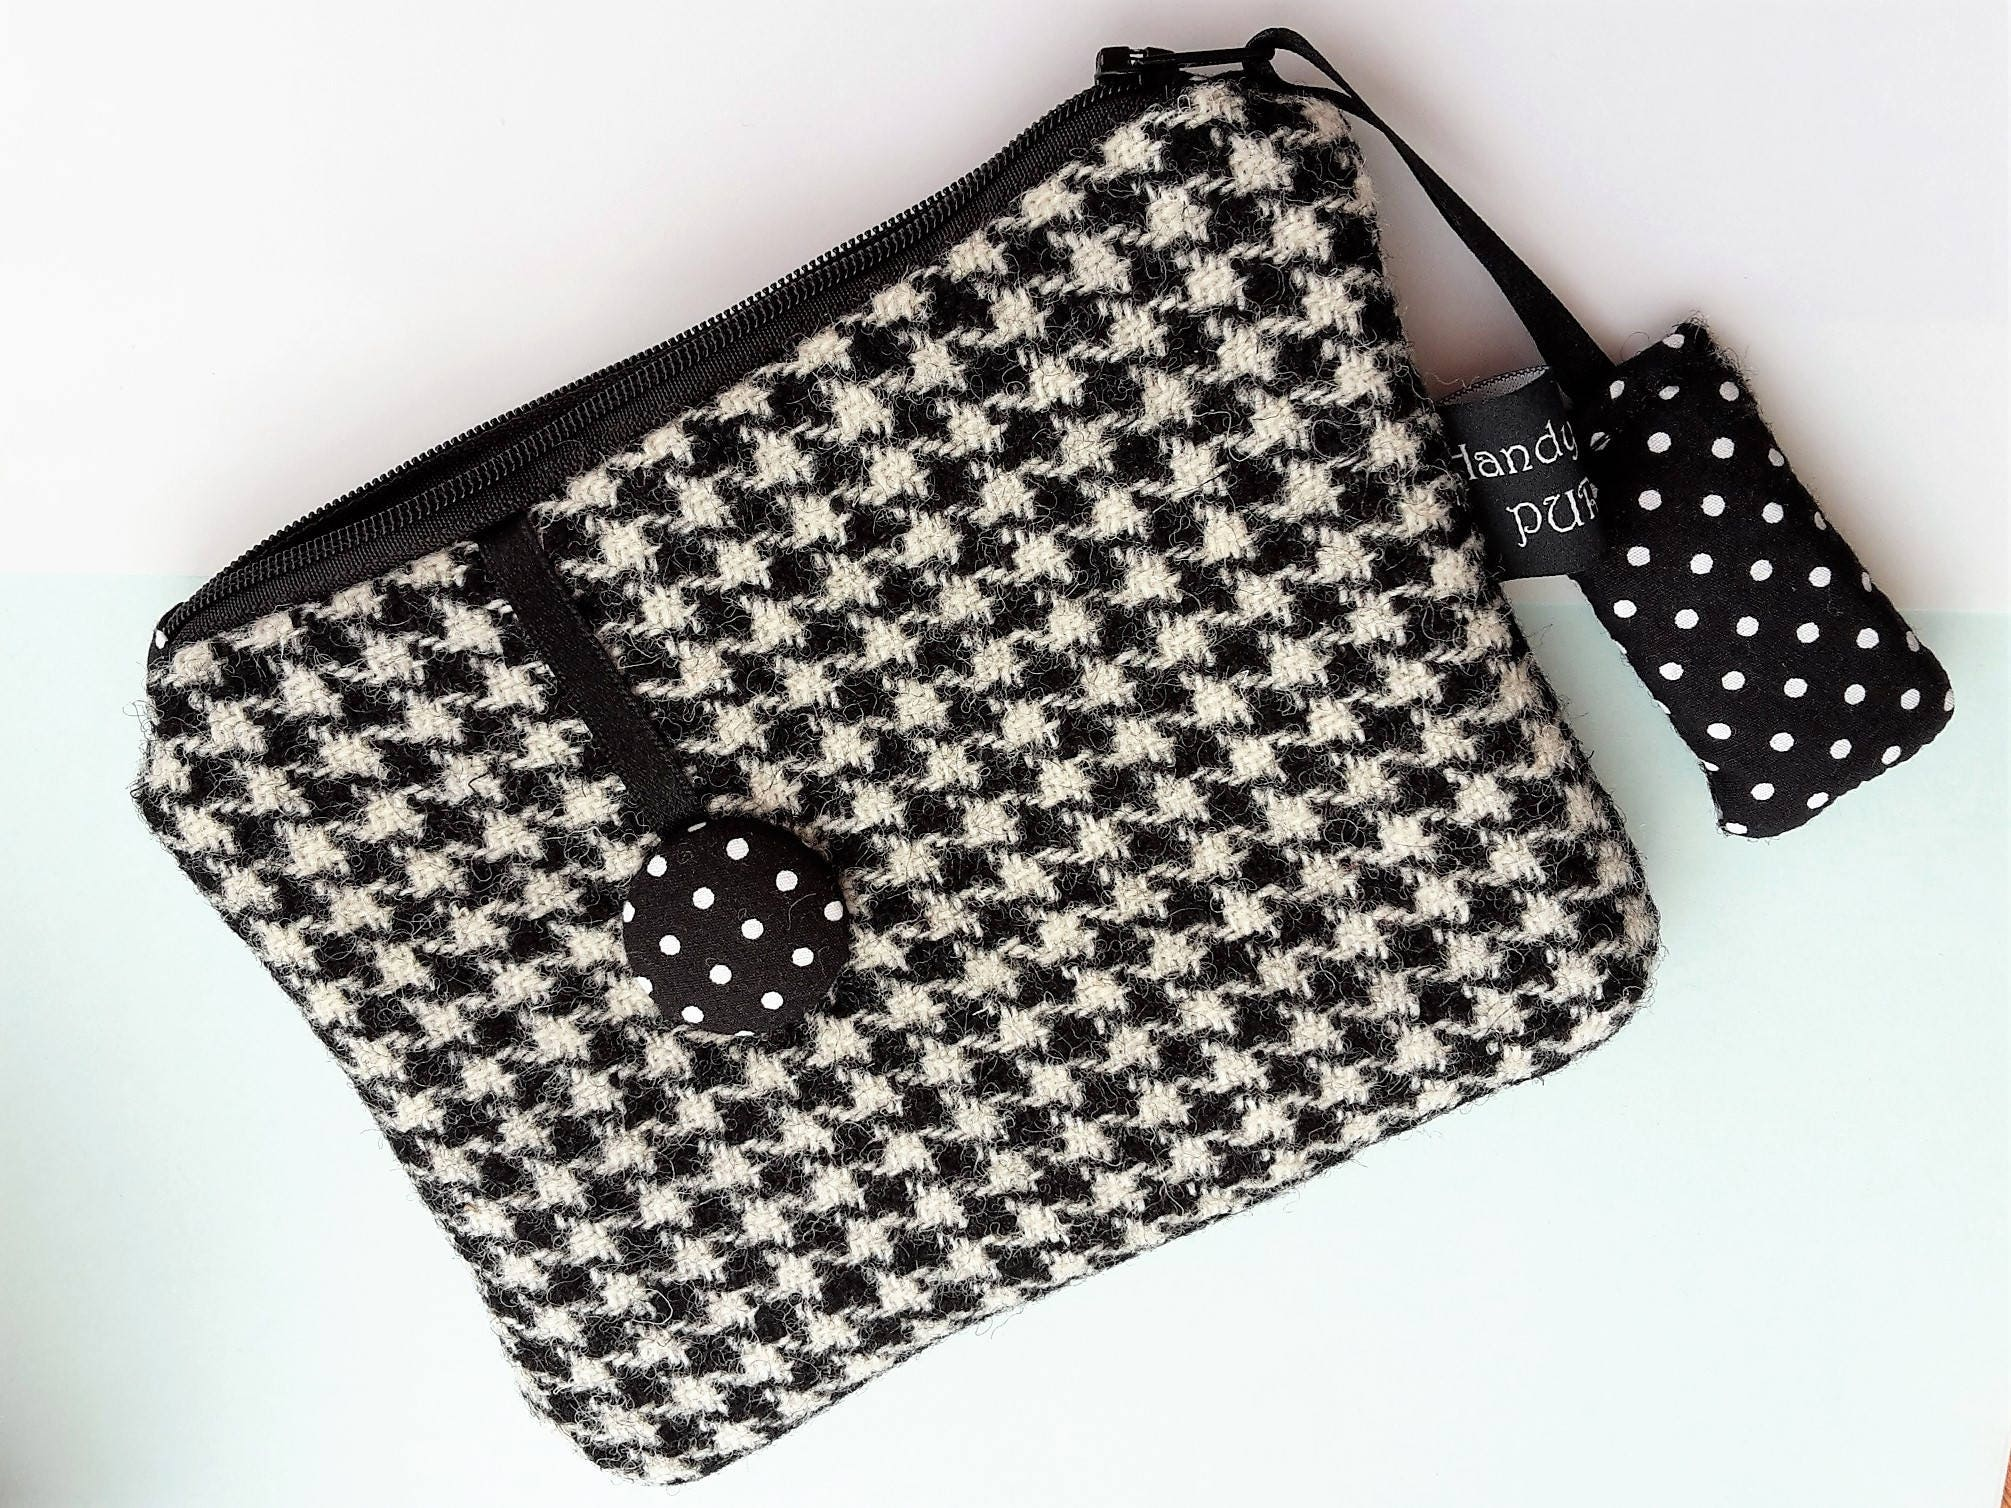 Harris Tweed Black and White Dogtooth Purse with White on Black Polka Dot Print Lining